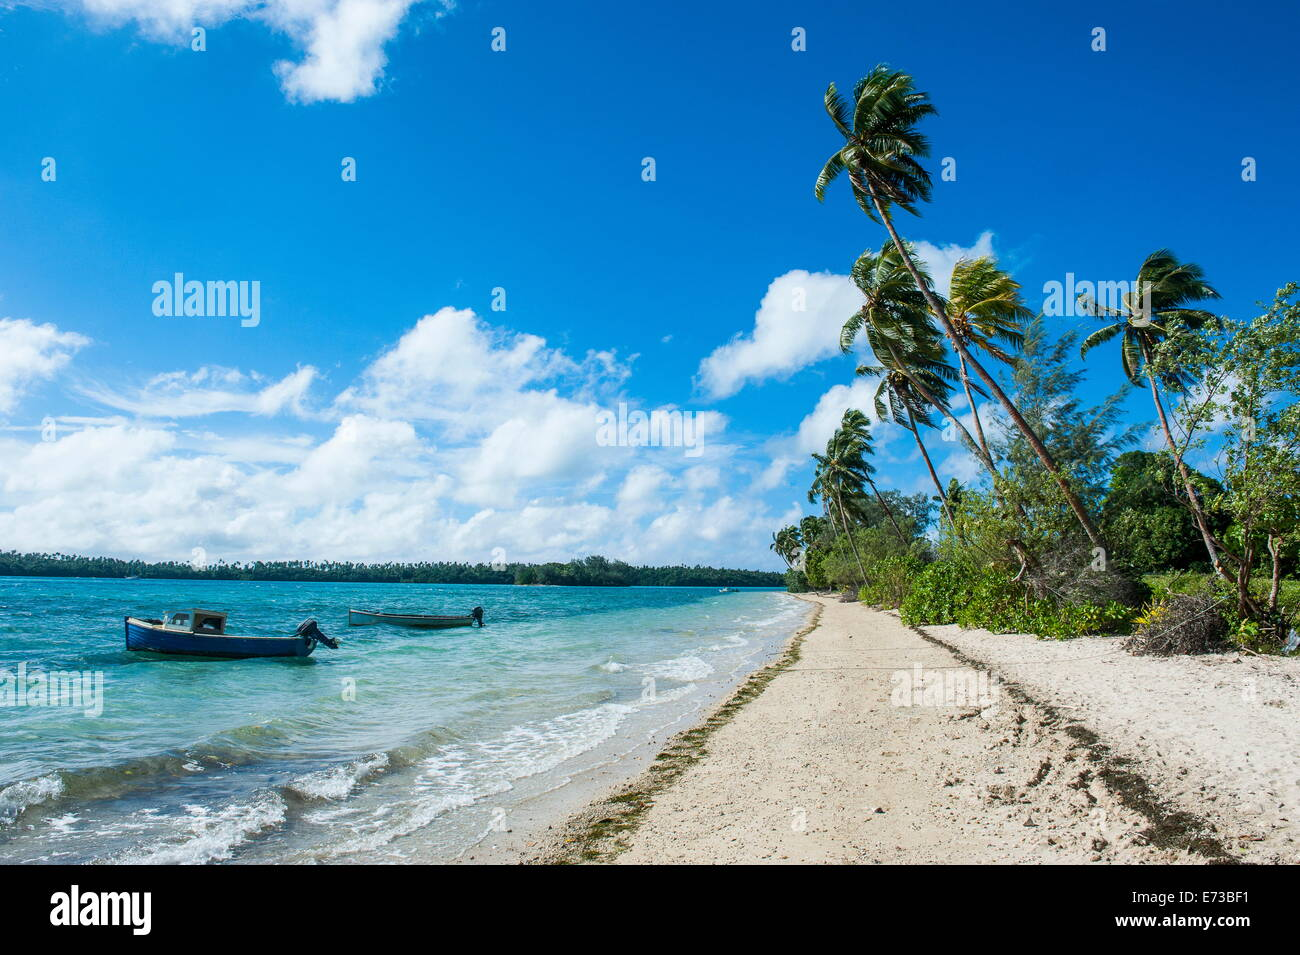 Palm fringed white sand beach on an islet of Vavau, Vavau Islands, Tonga, South Pacific, Pacific - Stock Image